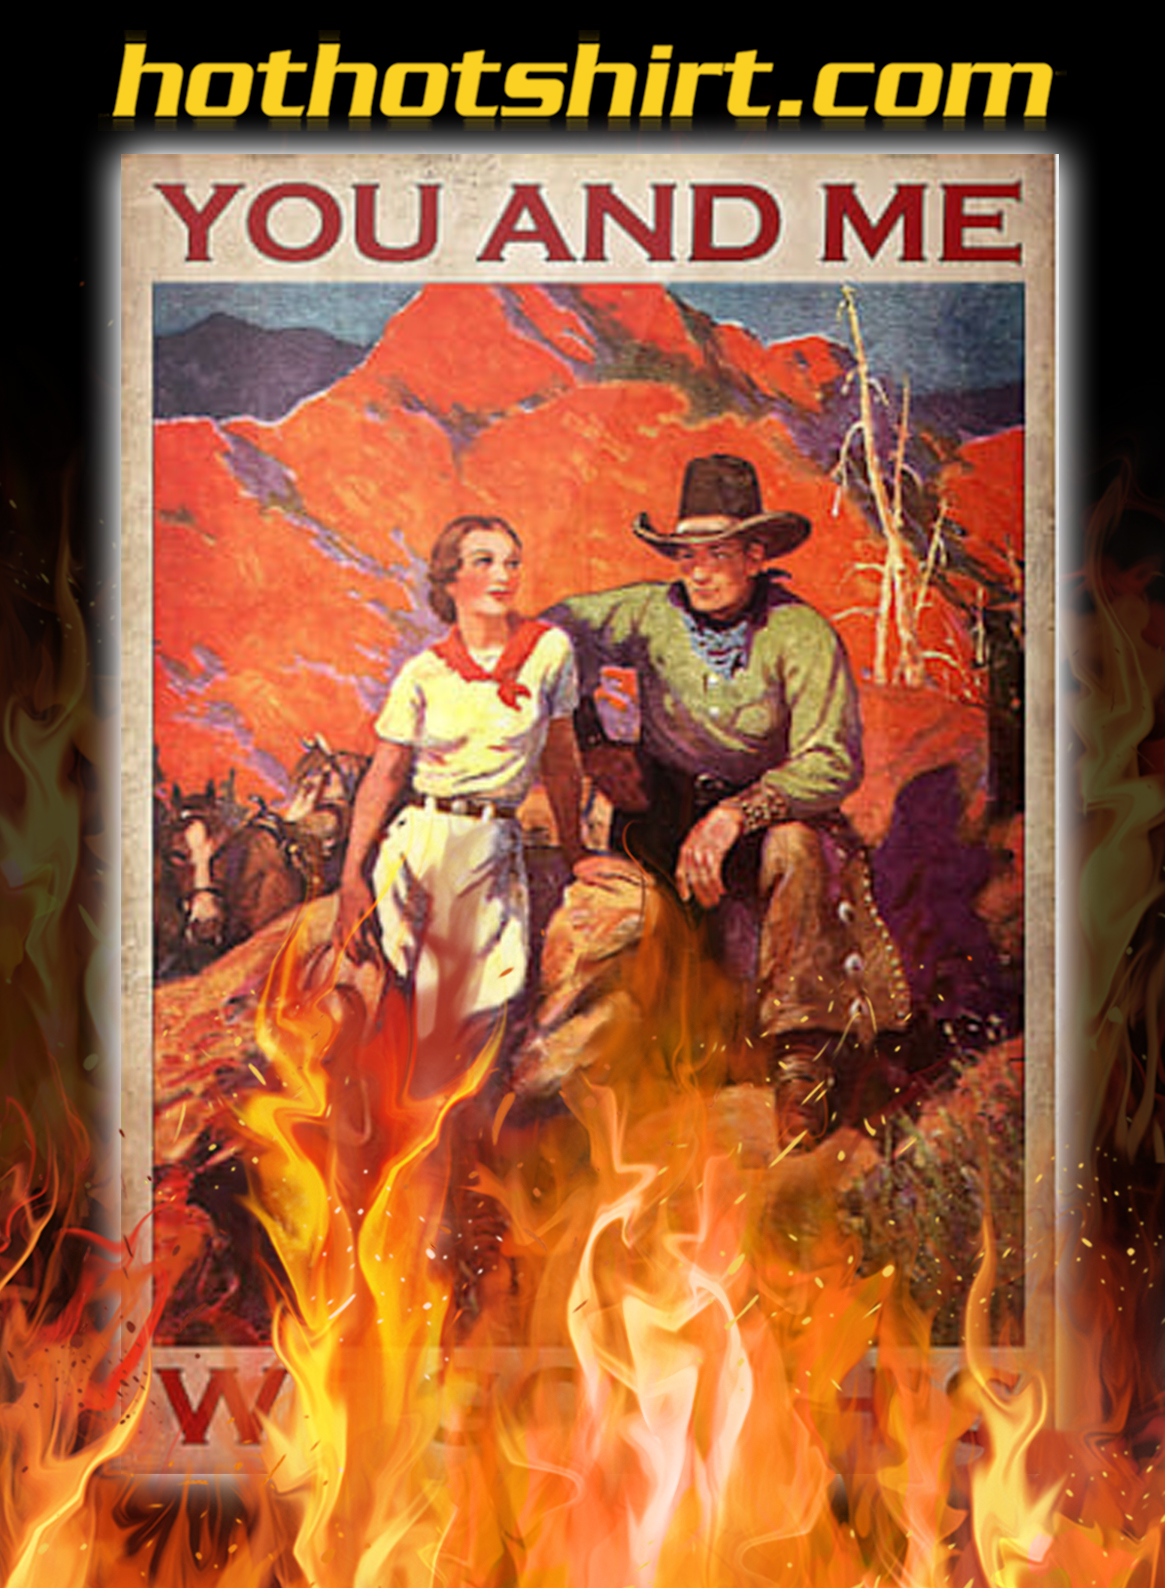 Vintage Cowboy Couple Poster You & Me We Got This Poster - A4